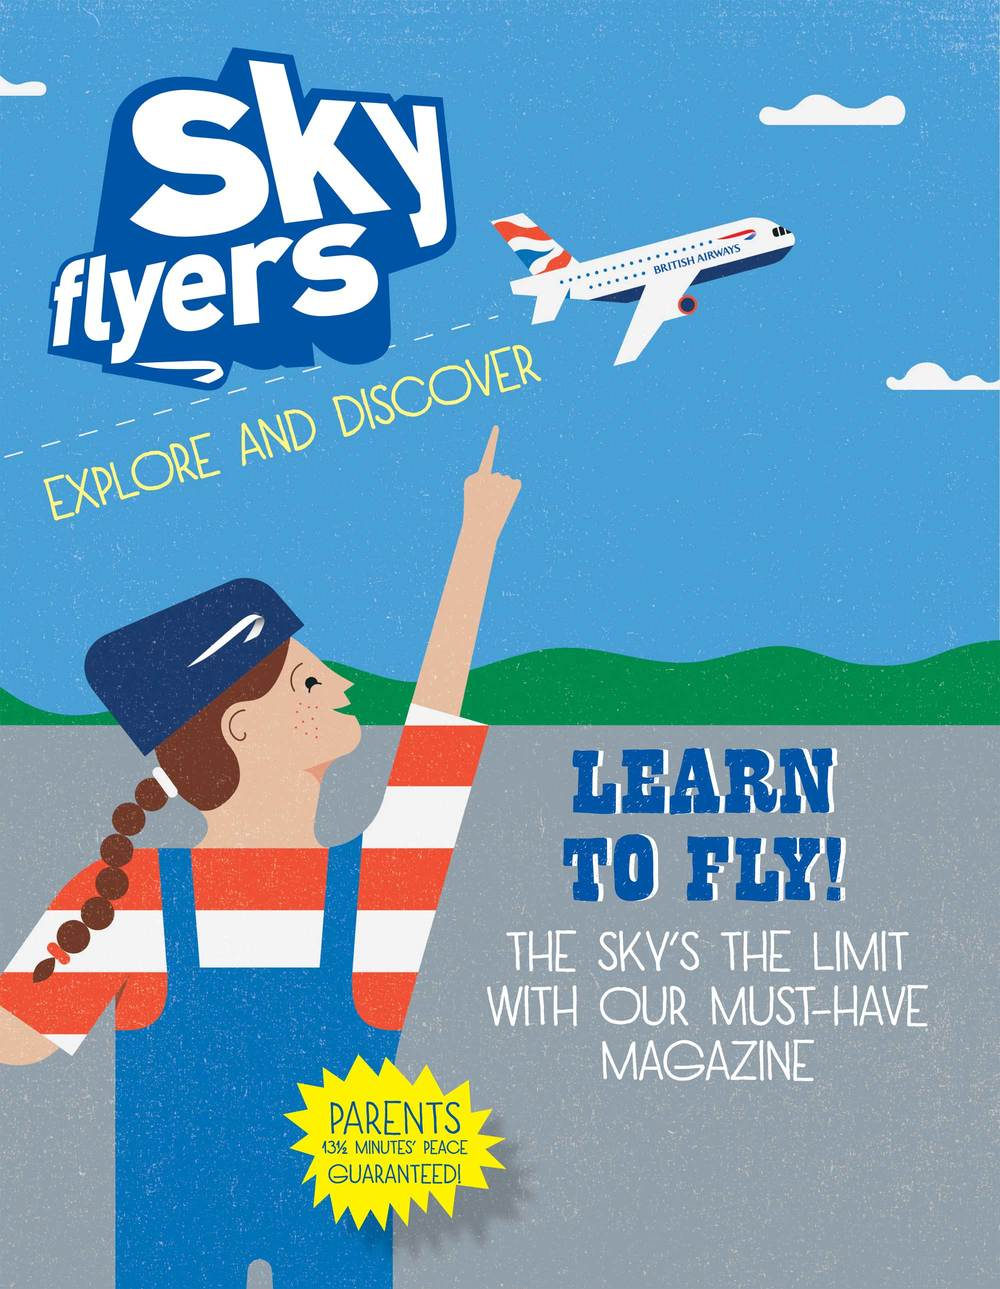 Tamara-Elphick-Skyflyers-British-Airways-Cover